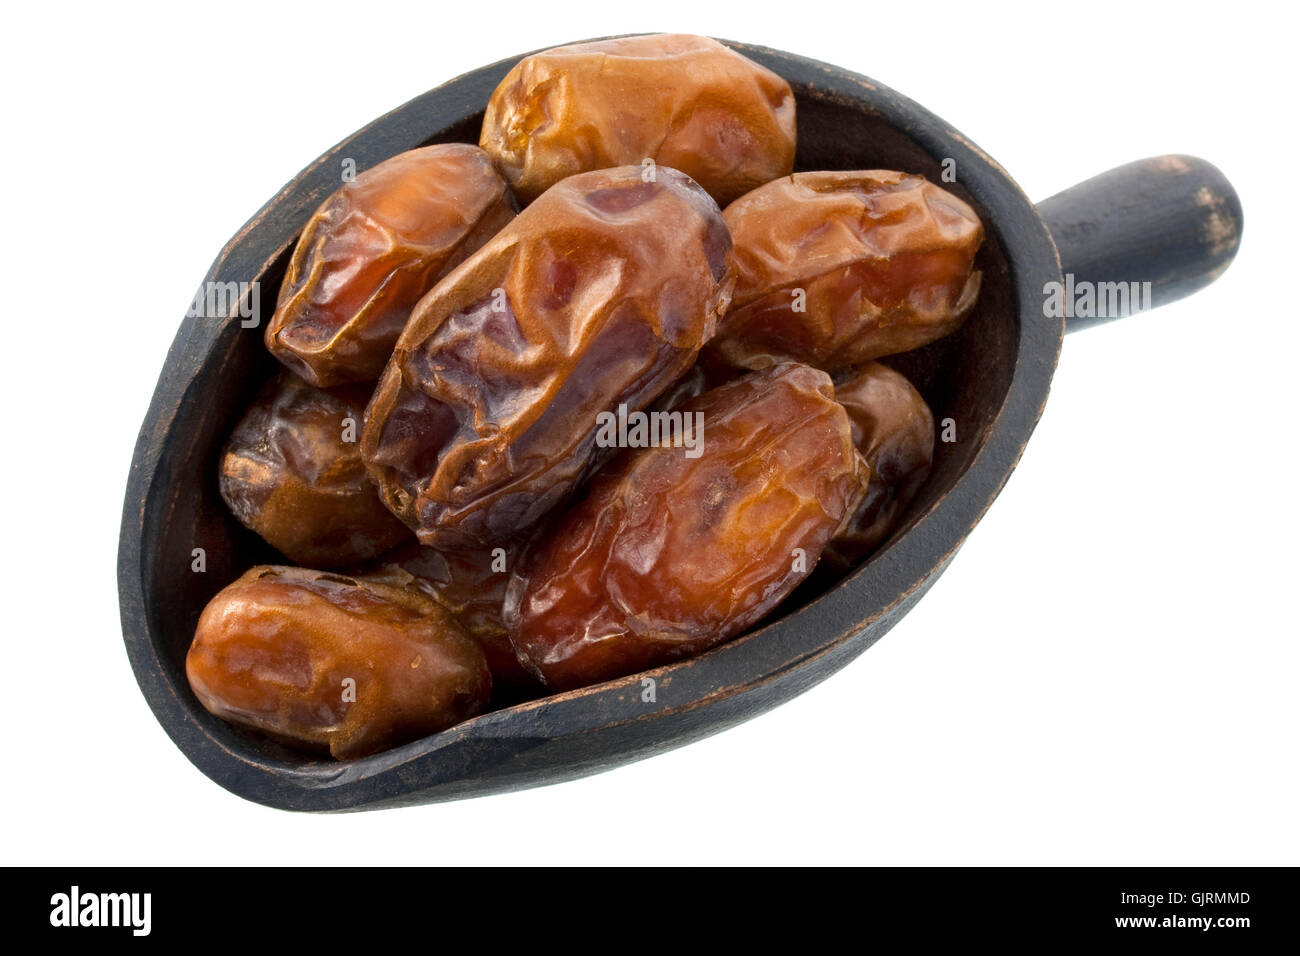 date time time indication - Stock Image